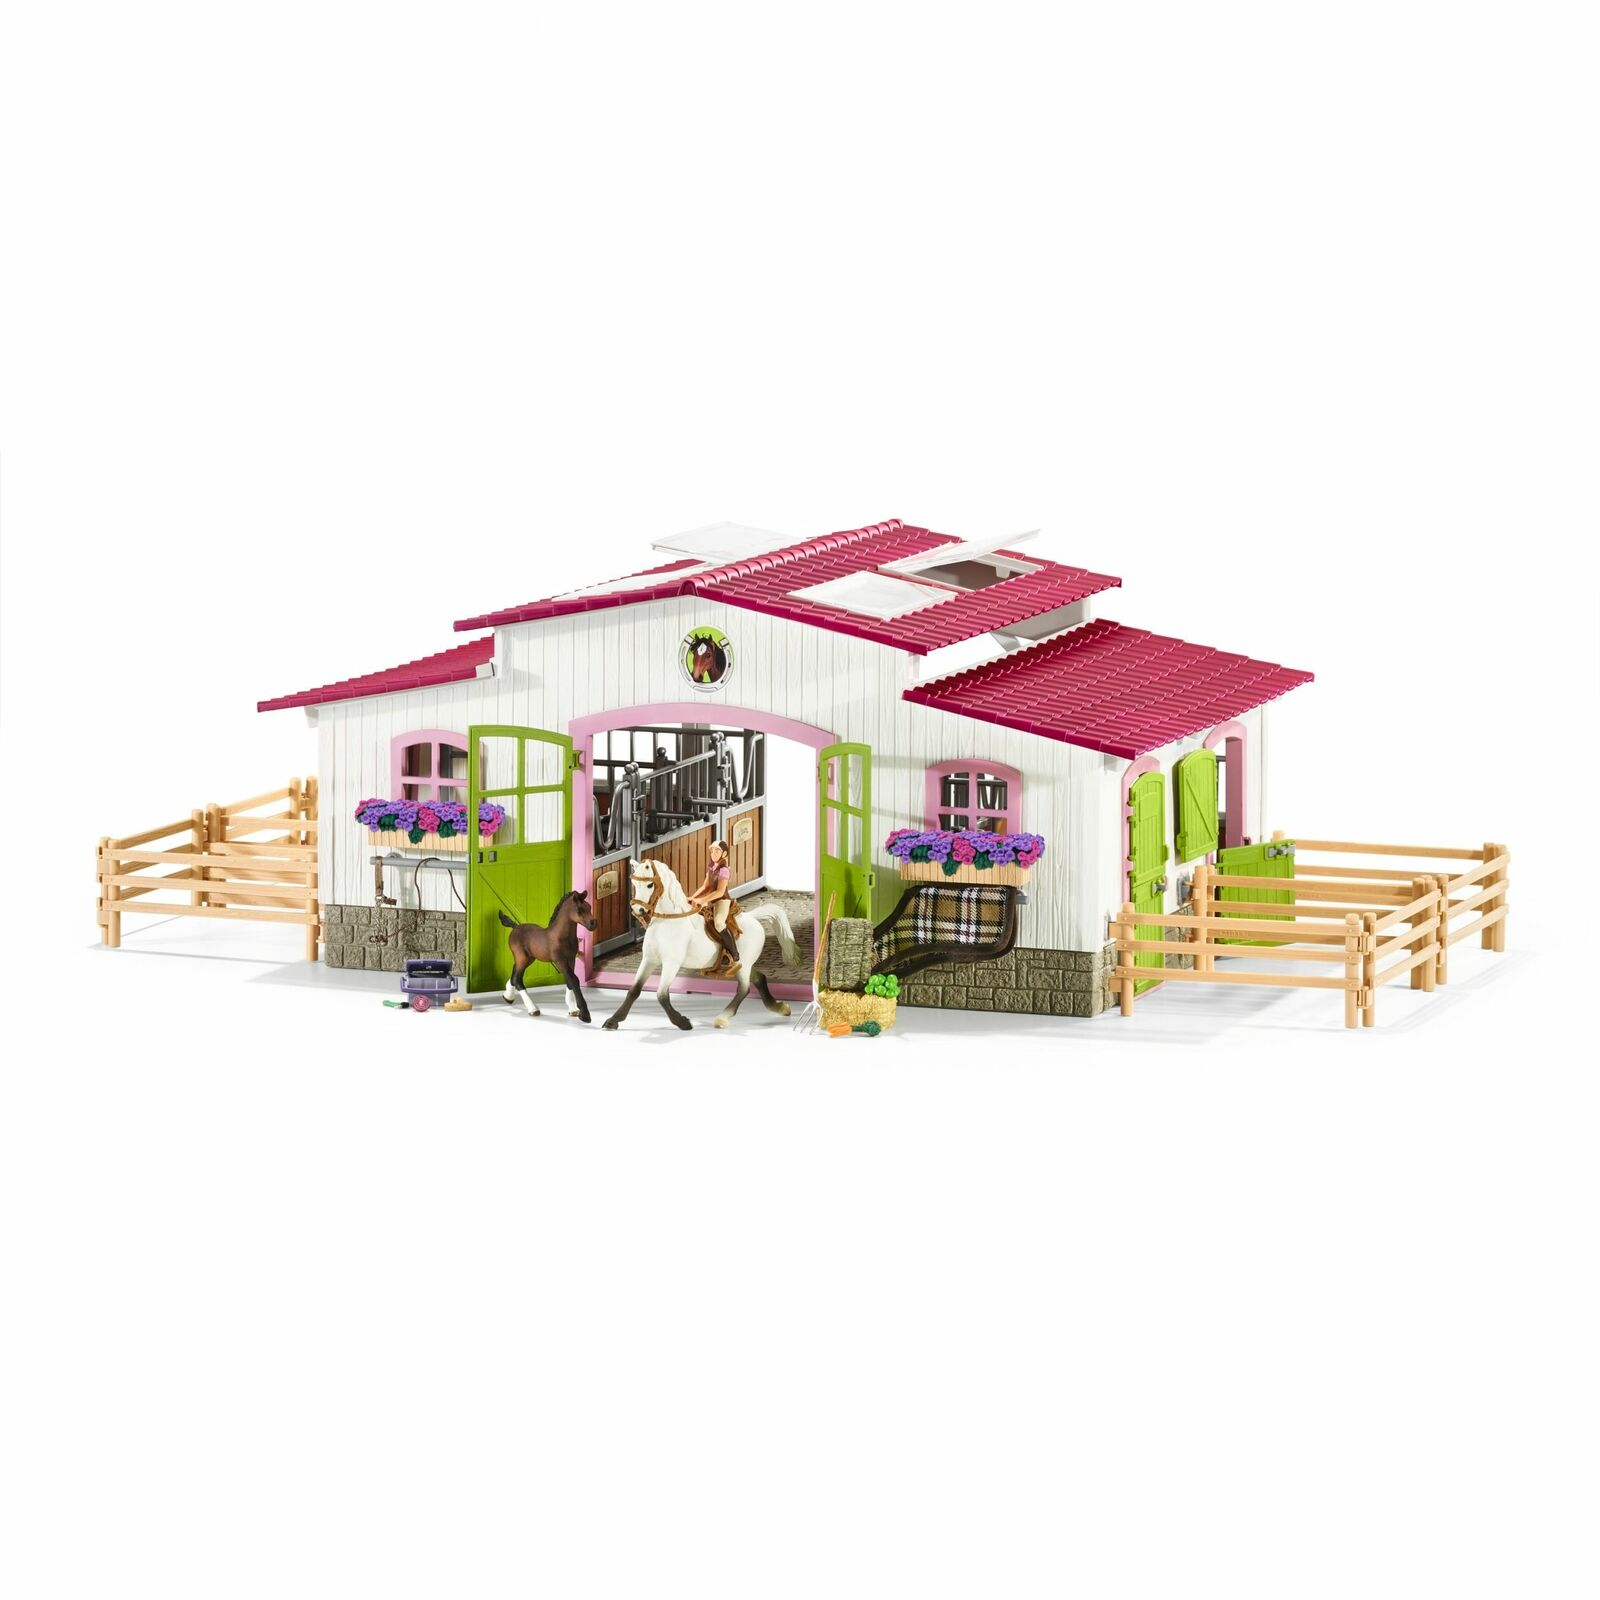 Riding Centre Equestrian with Horses & Rider - Schleich - 42344 Playset NEW